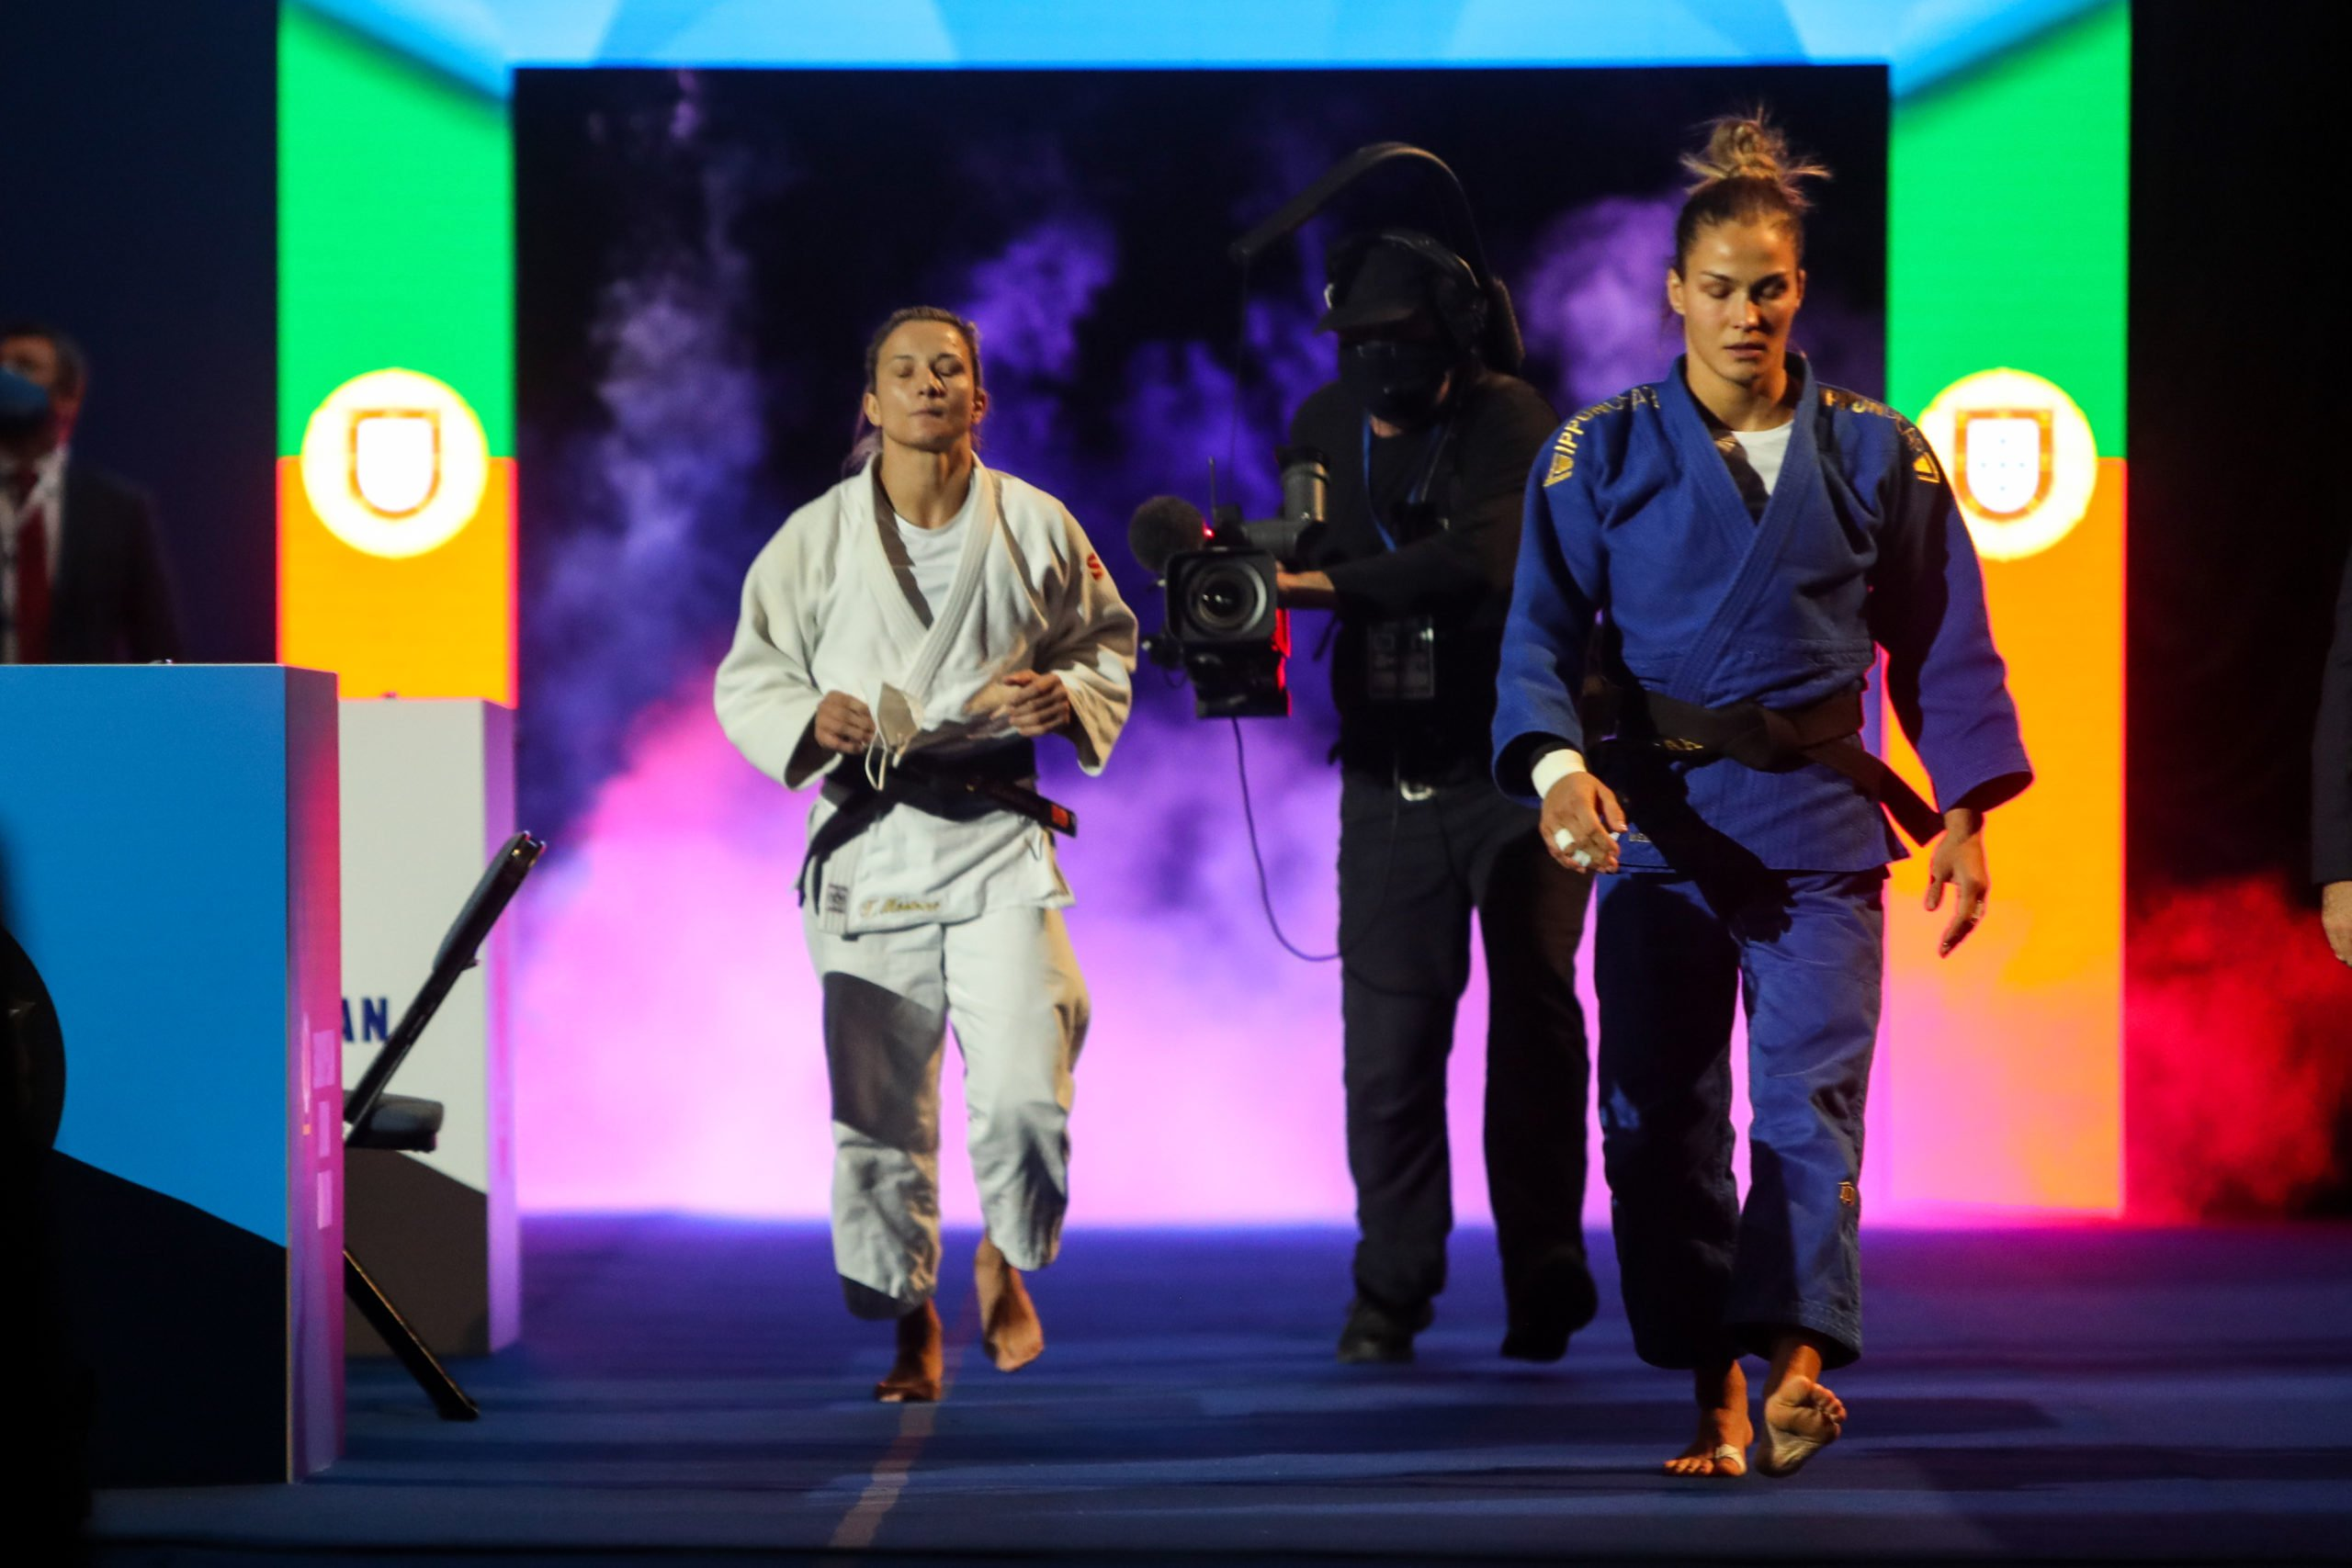 EUROPE'S BEST SHOW UP ON DAY ONE OF EUROPEAN CHAMPIONSHIPS